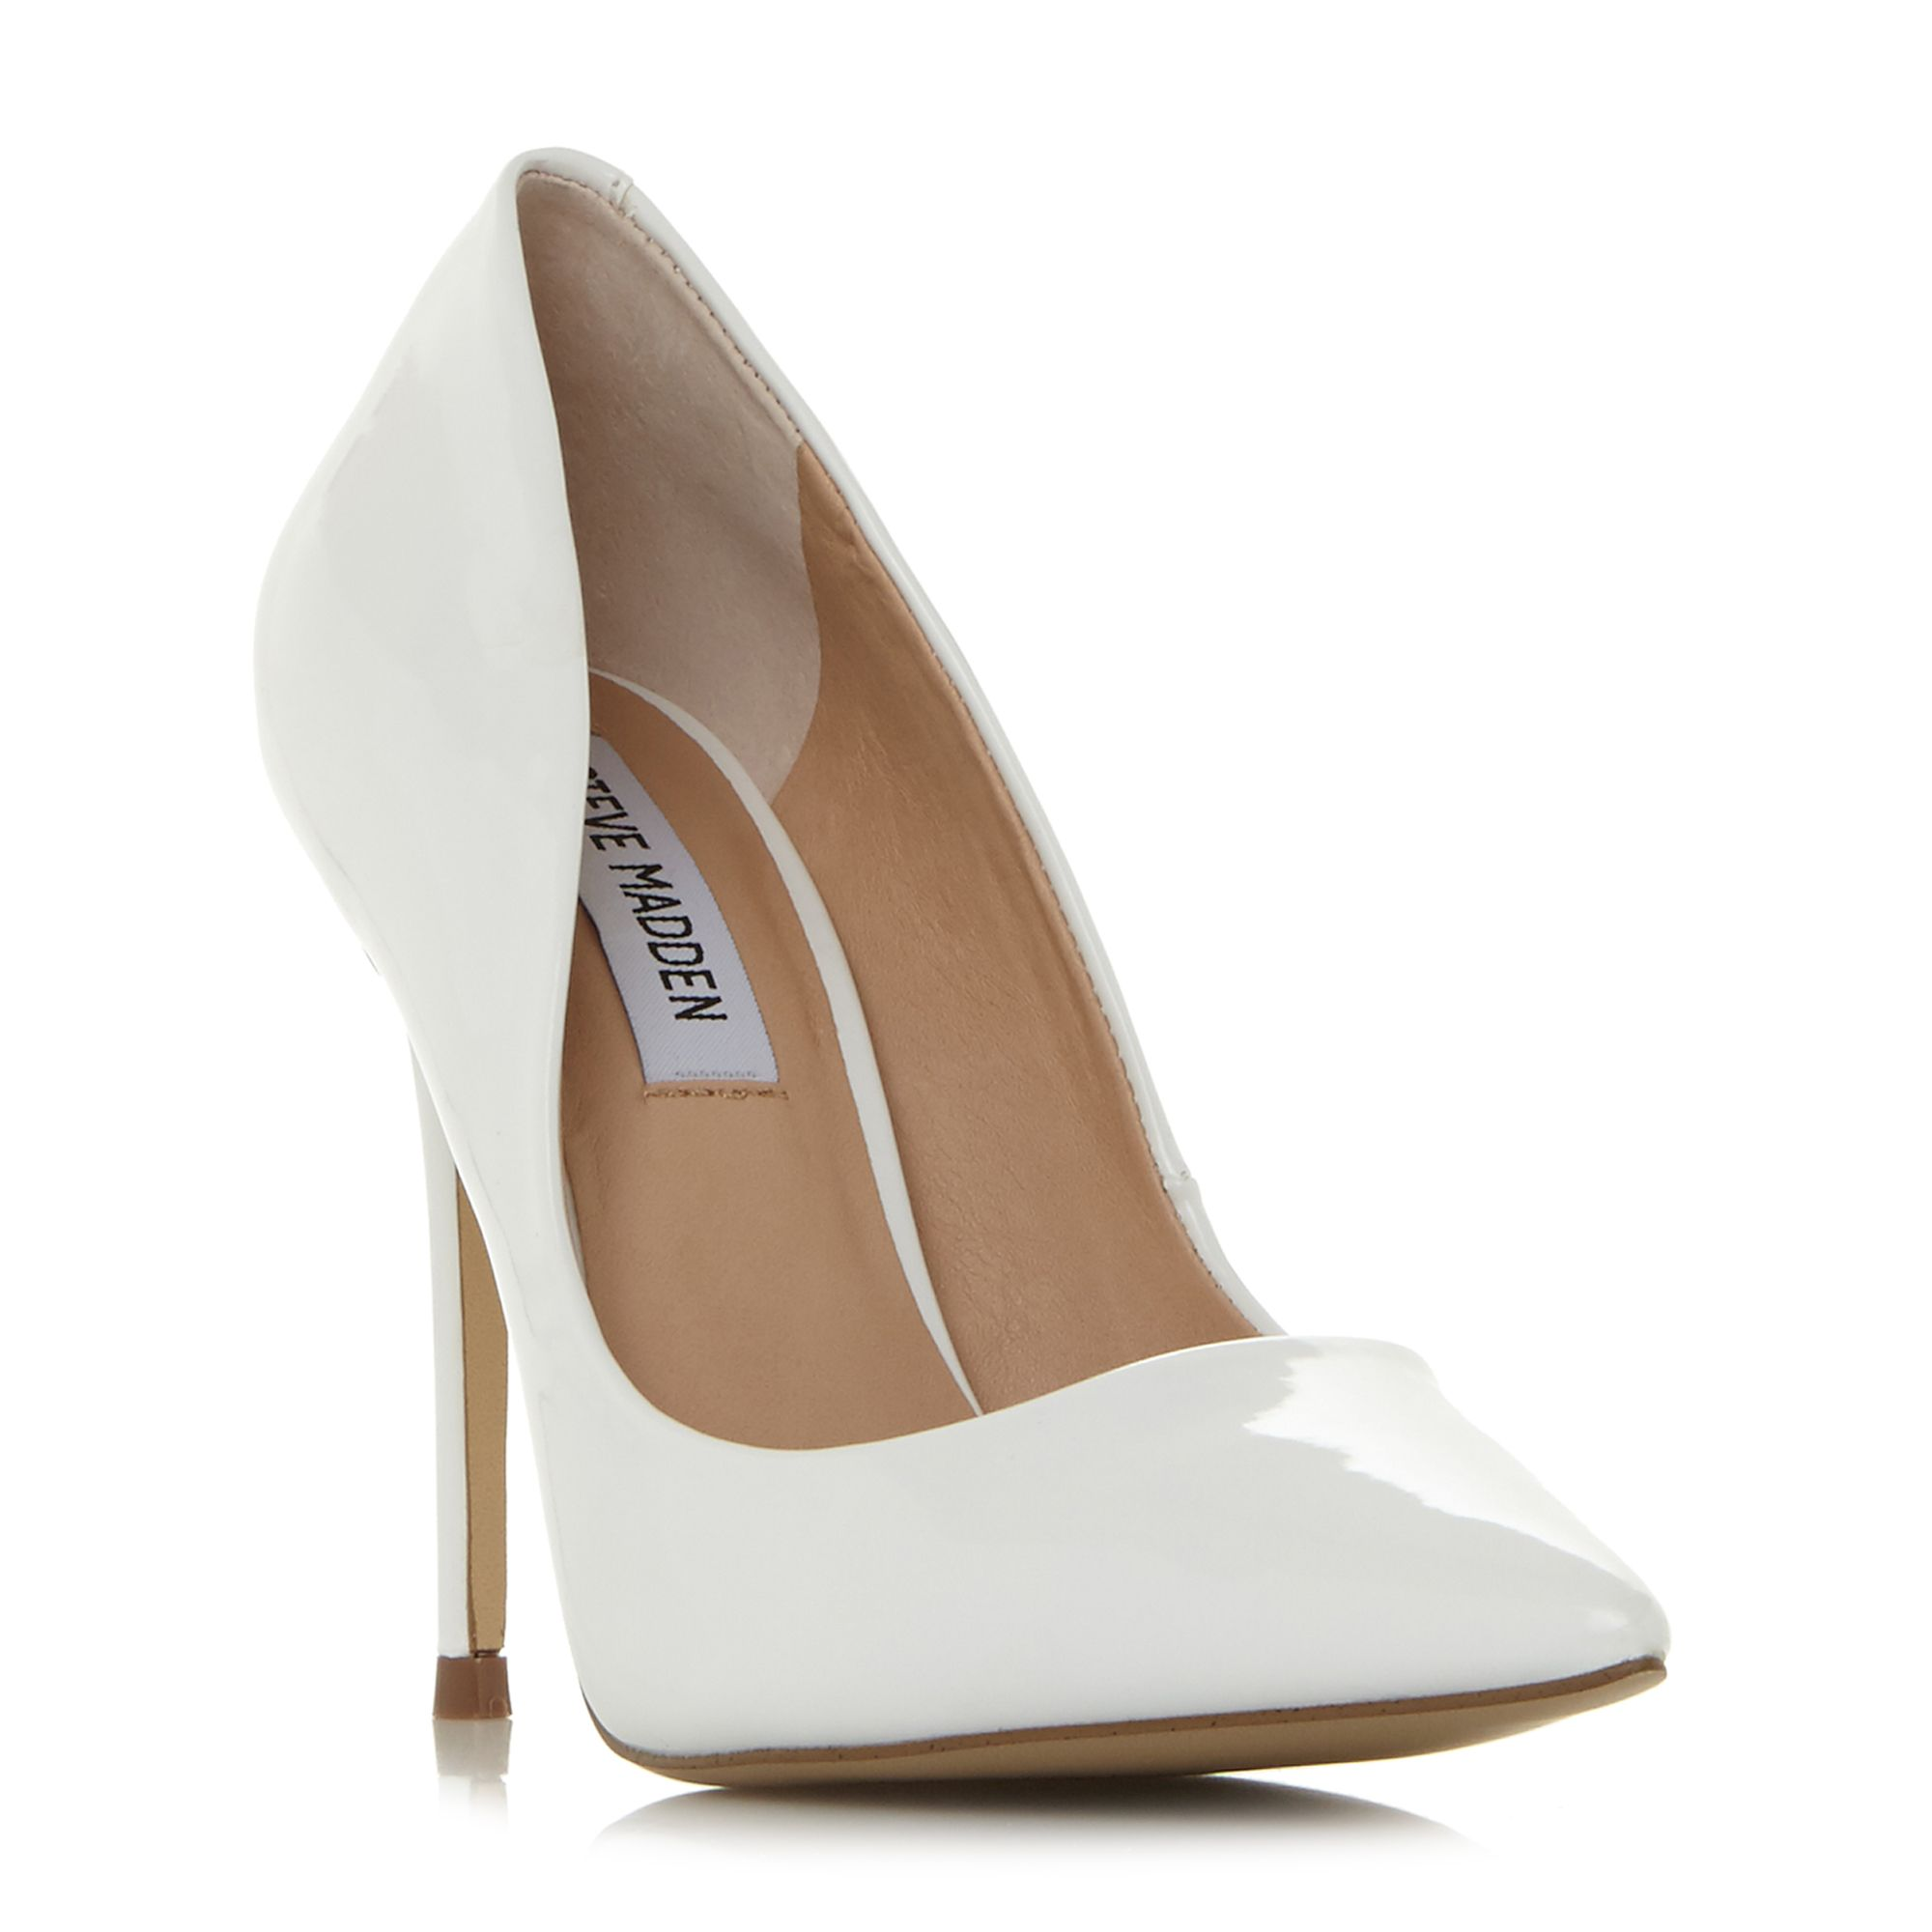 Steve Madden Daisiee Sm Point Toe Court Shoes, White